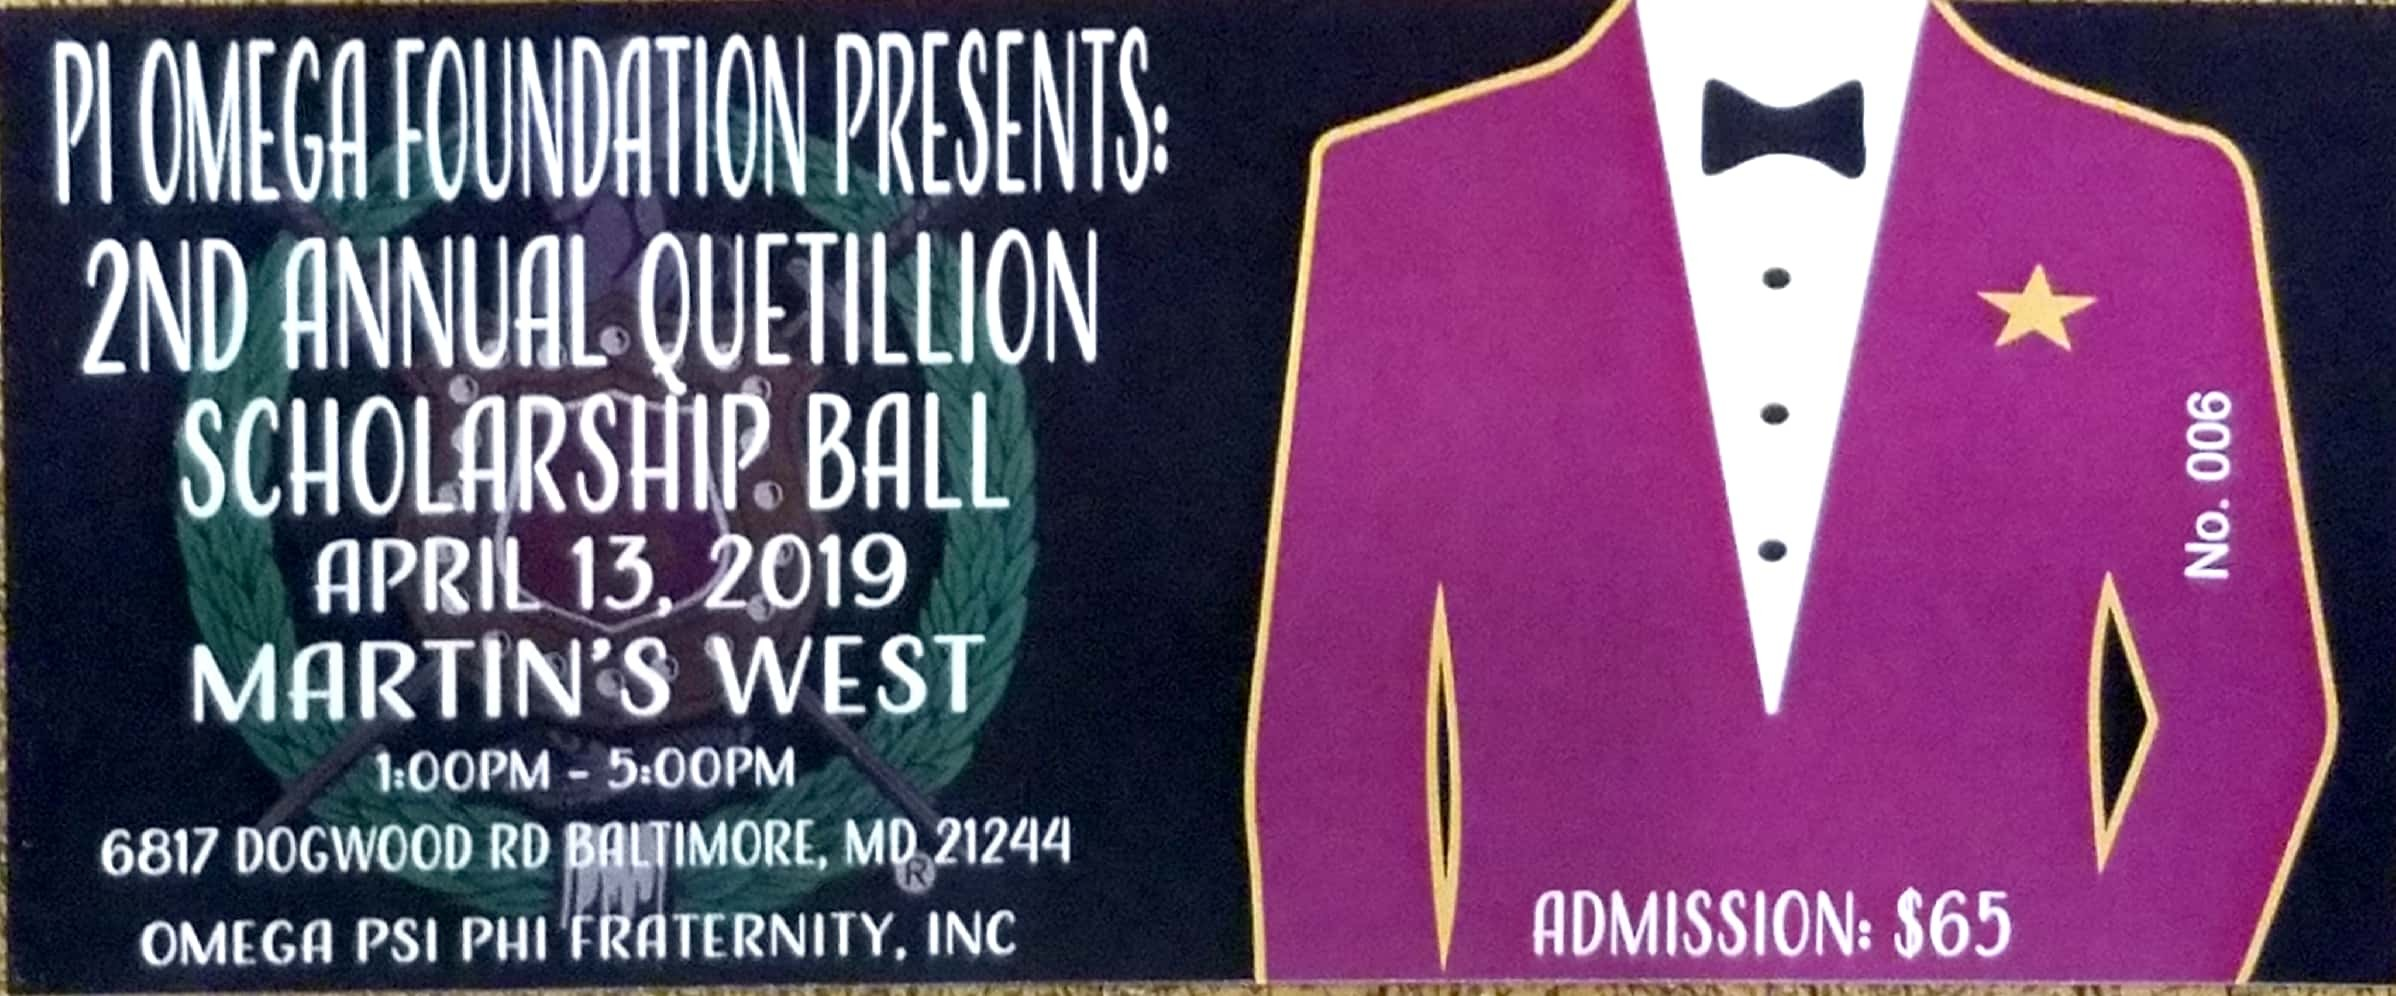 2nd Annual Quetillion Ball